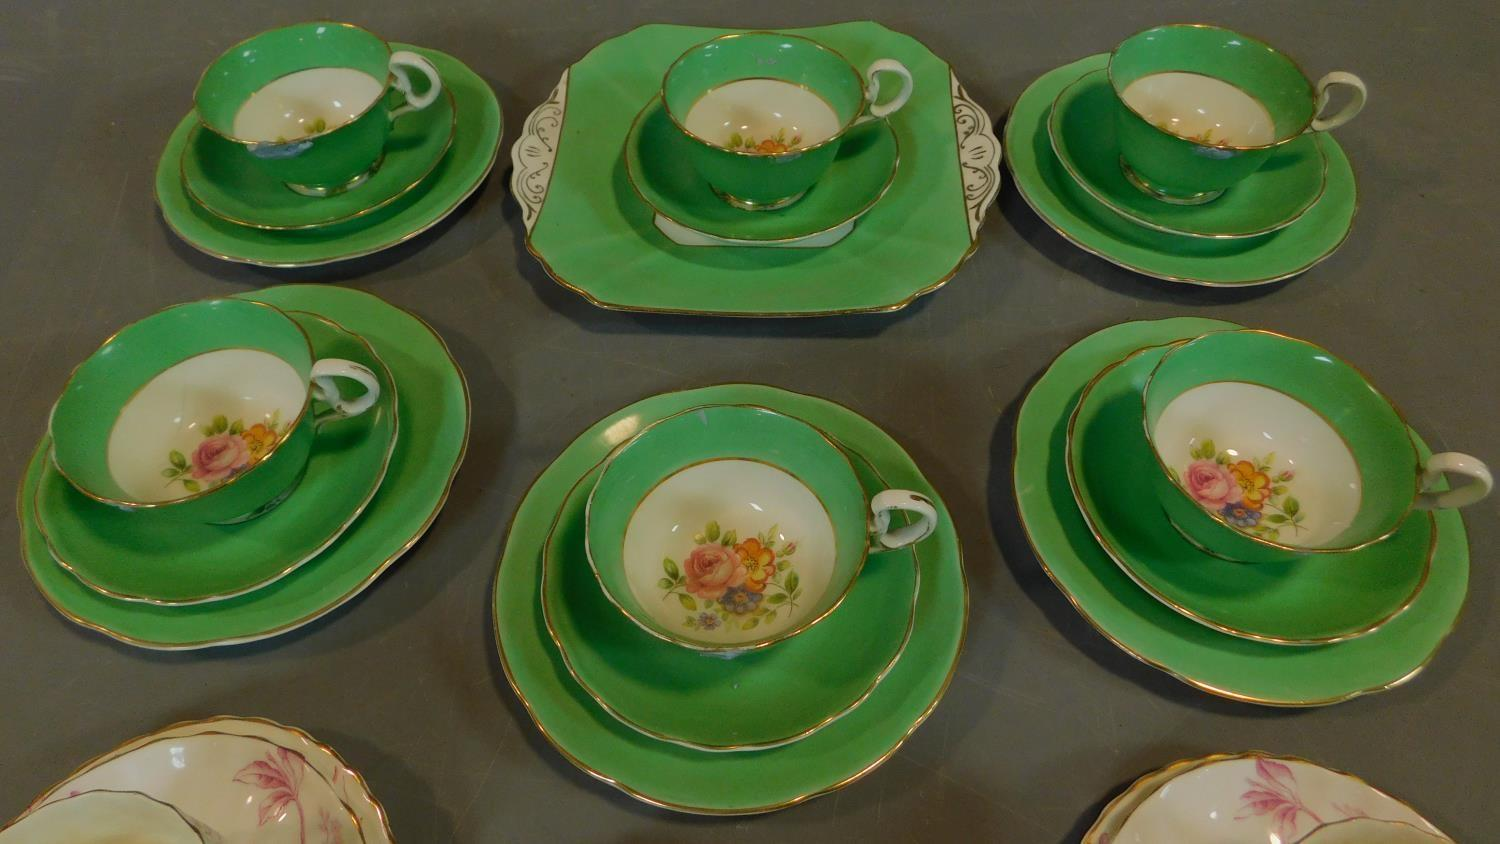 A green floral decorated tea set for six and a seven piece pink floral tea set. - Image 2 of 9